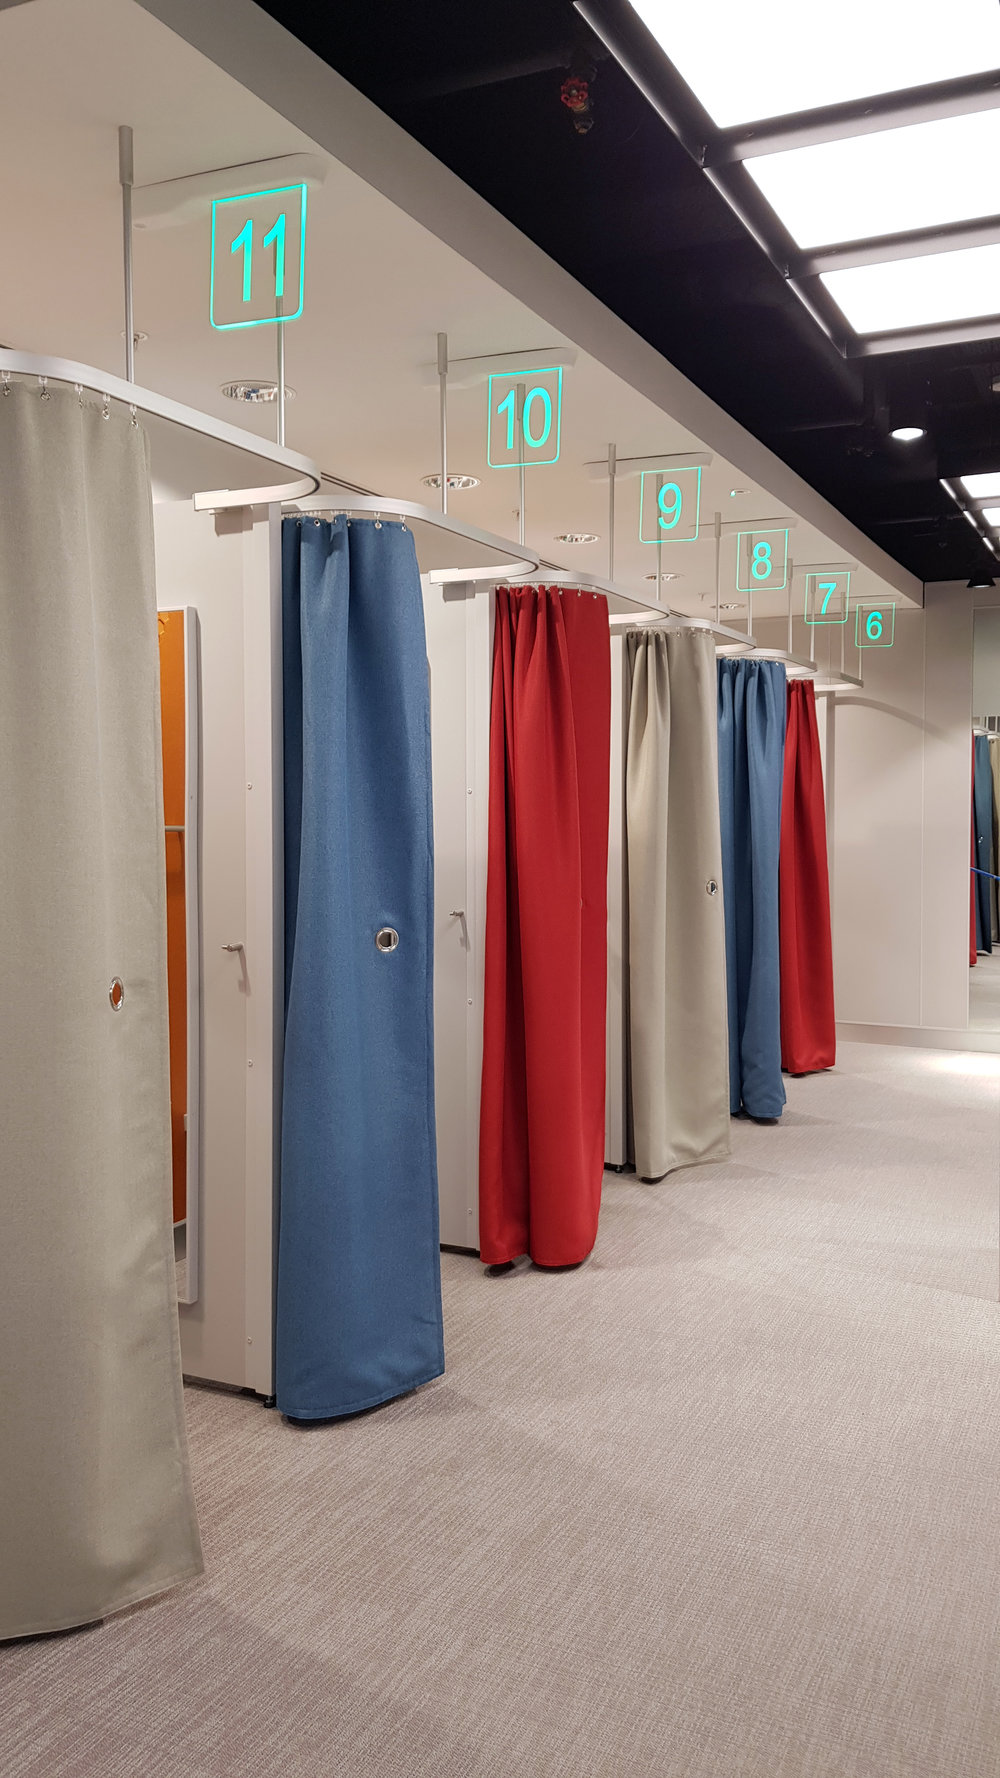 LED illuminated changing room signage, activated by proximity sensor